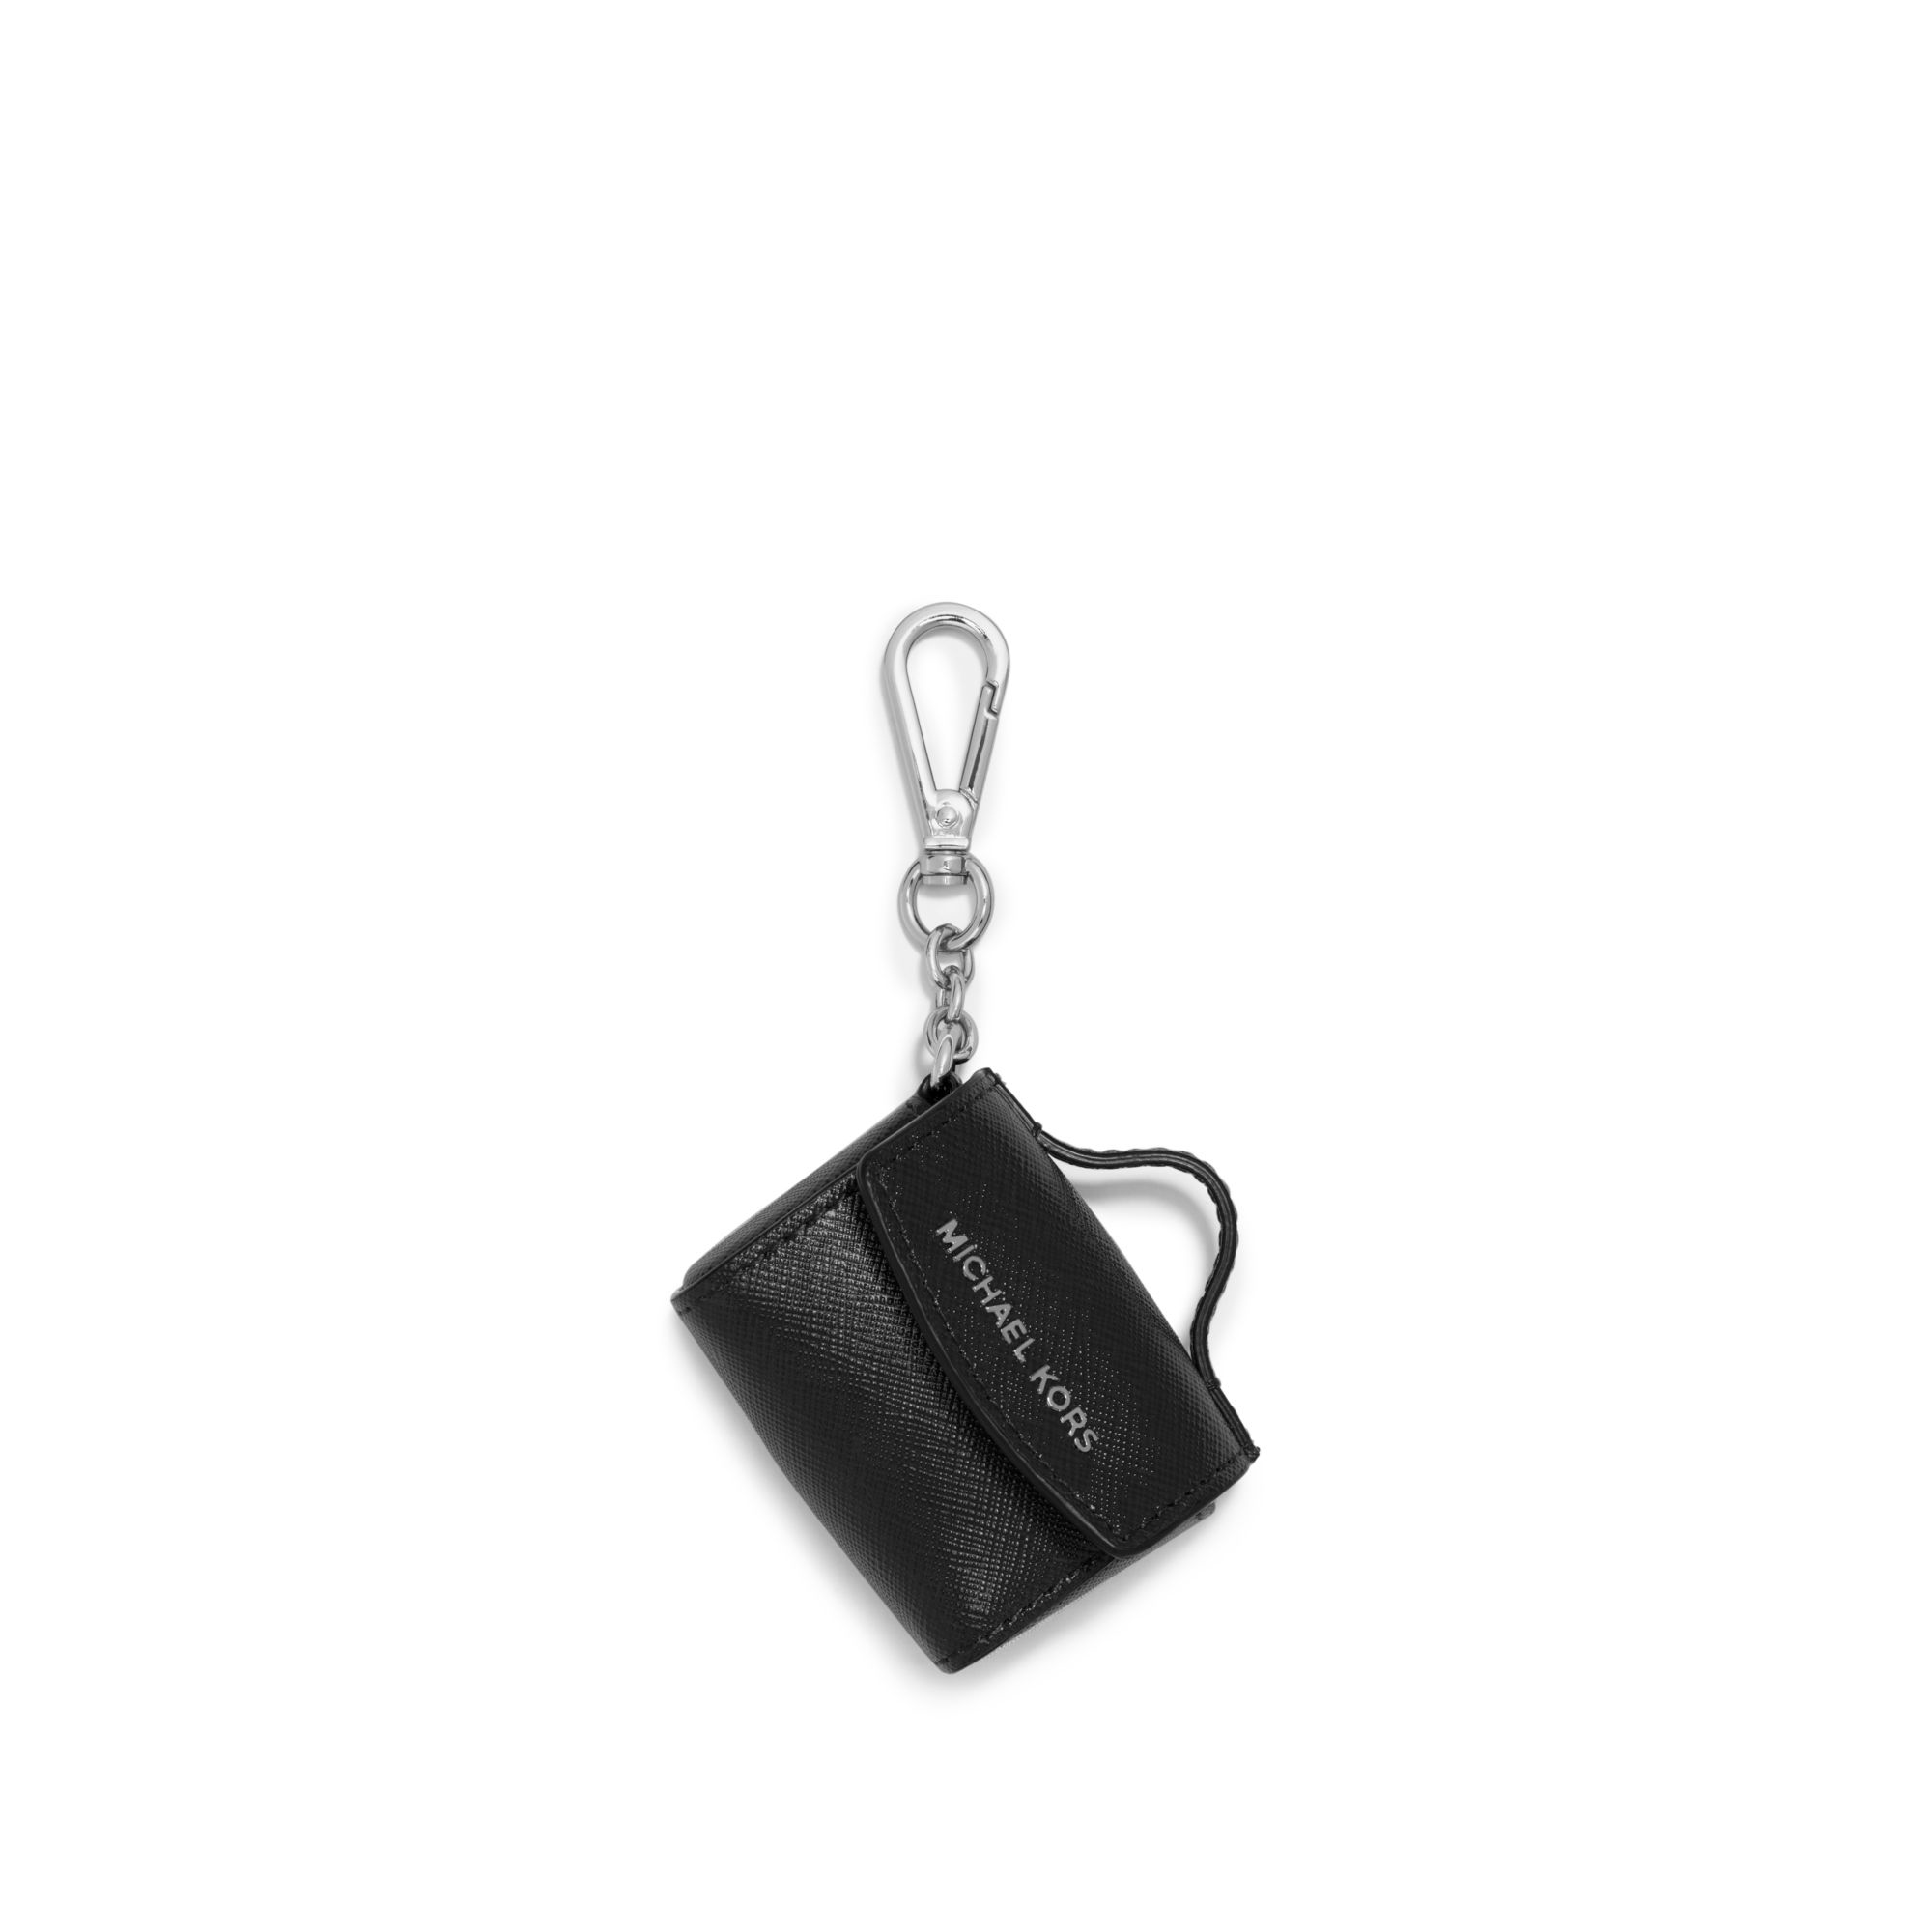 a52272f1a74d48 Michael Kors Ava Saffiano Leather Coin Purse Key Chain in Black - Lyst